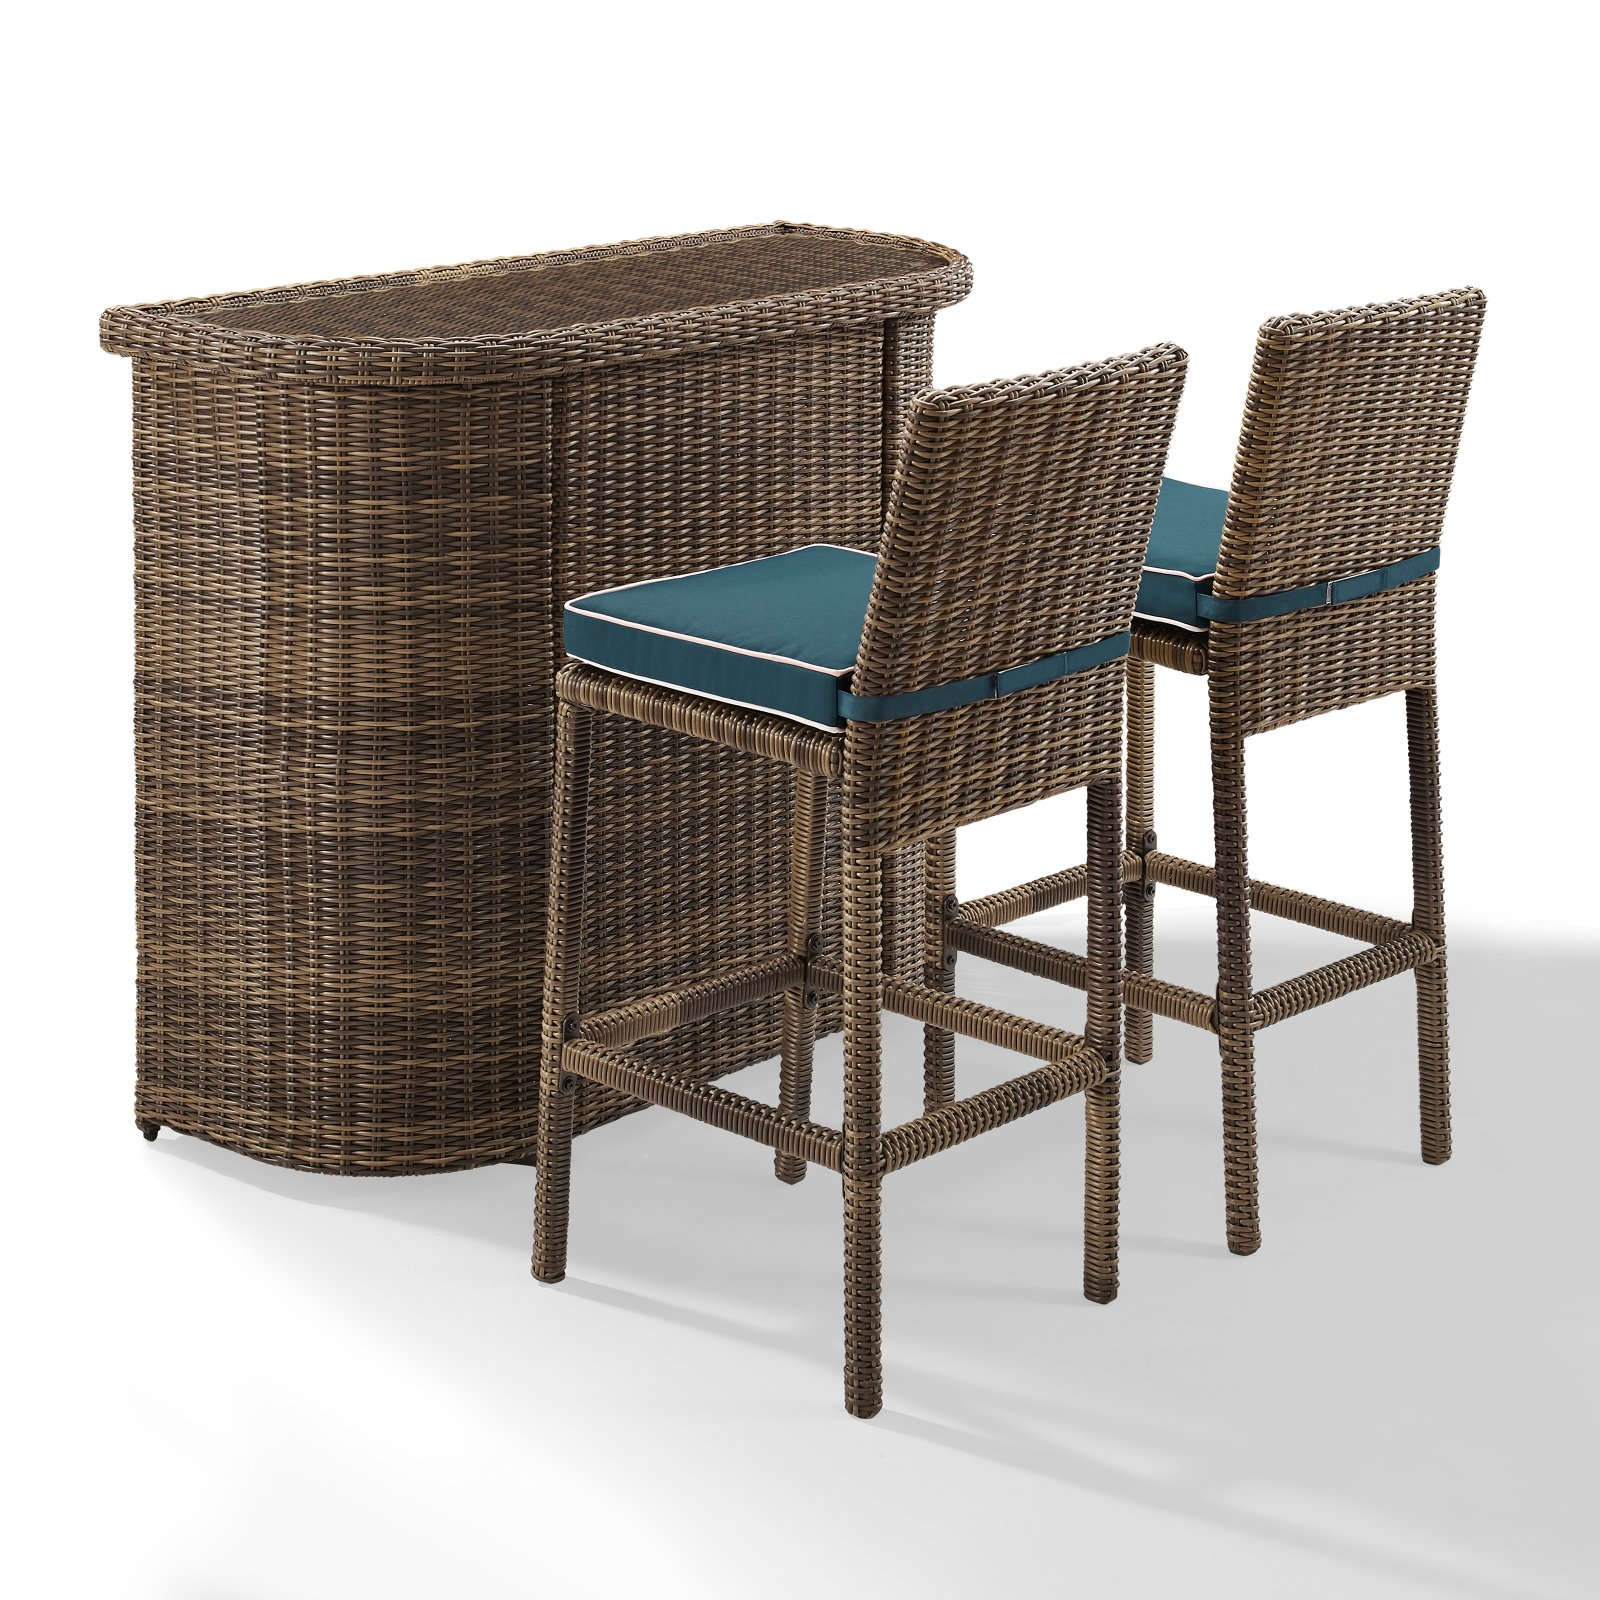 Crosley Furniture Bradenton 3 Piece Outdoor Wicker Bar Set - Bar & Two Stools with Navy Cushions